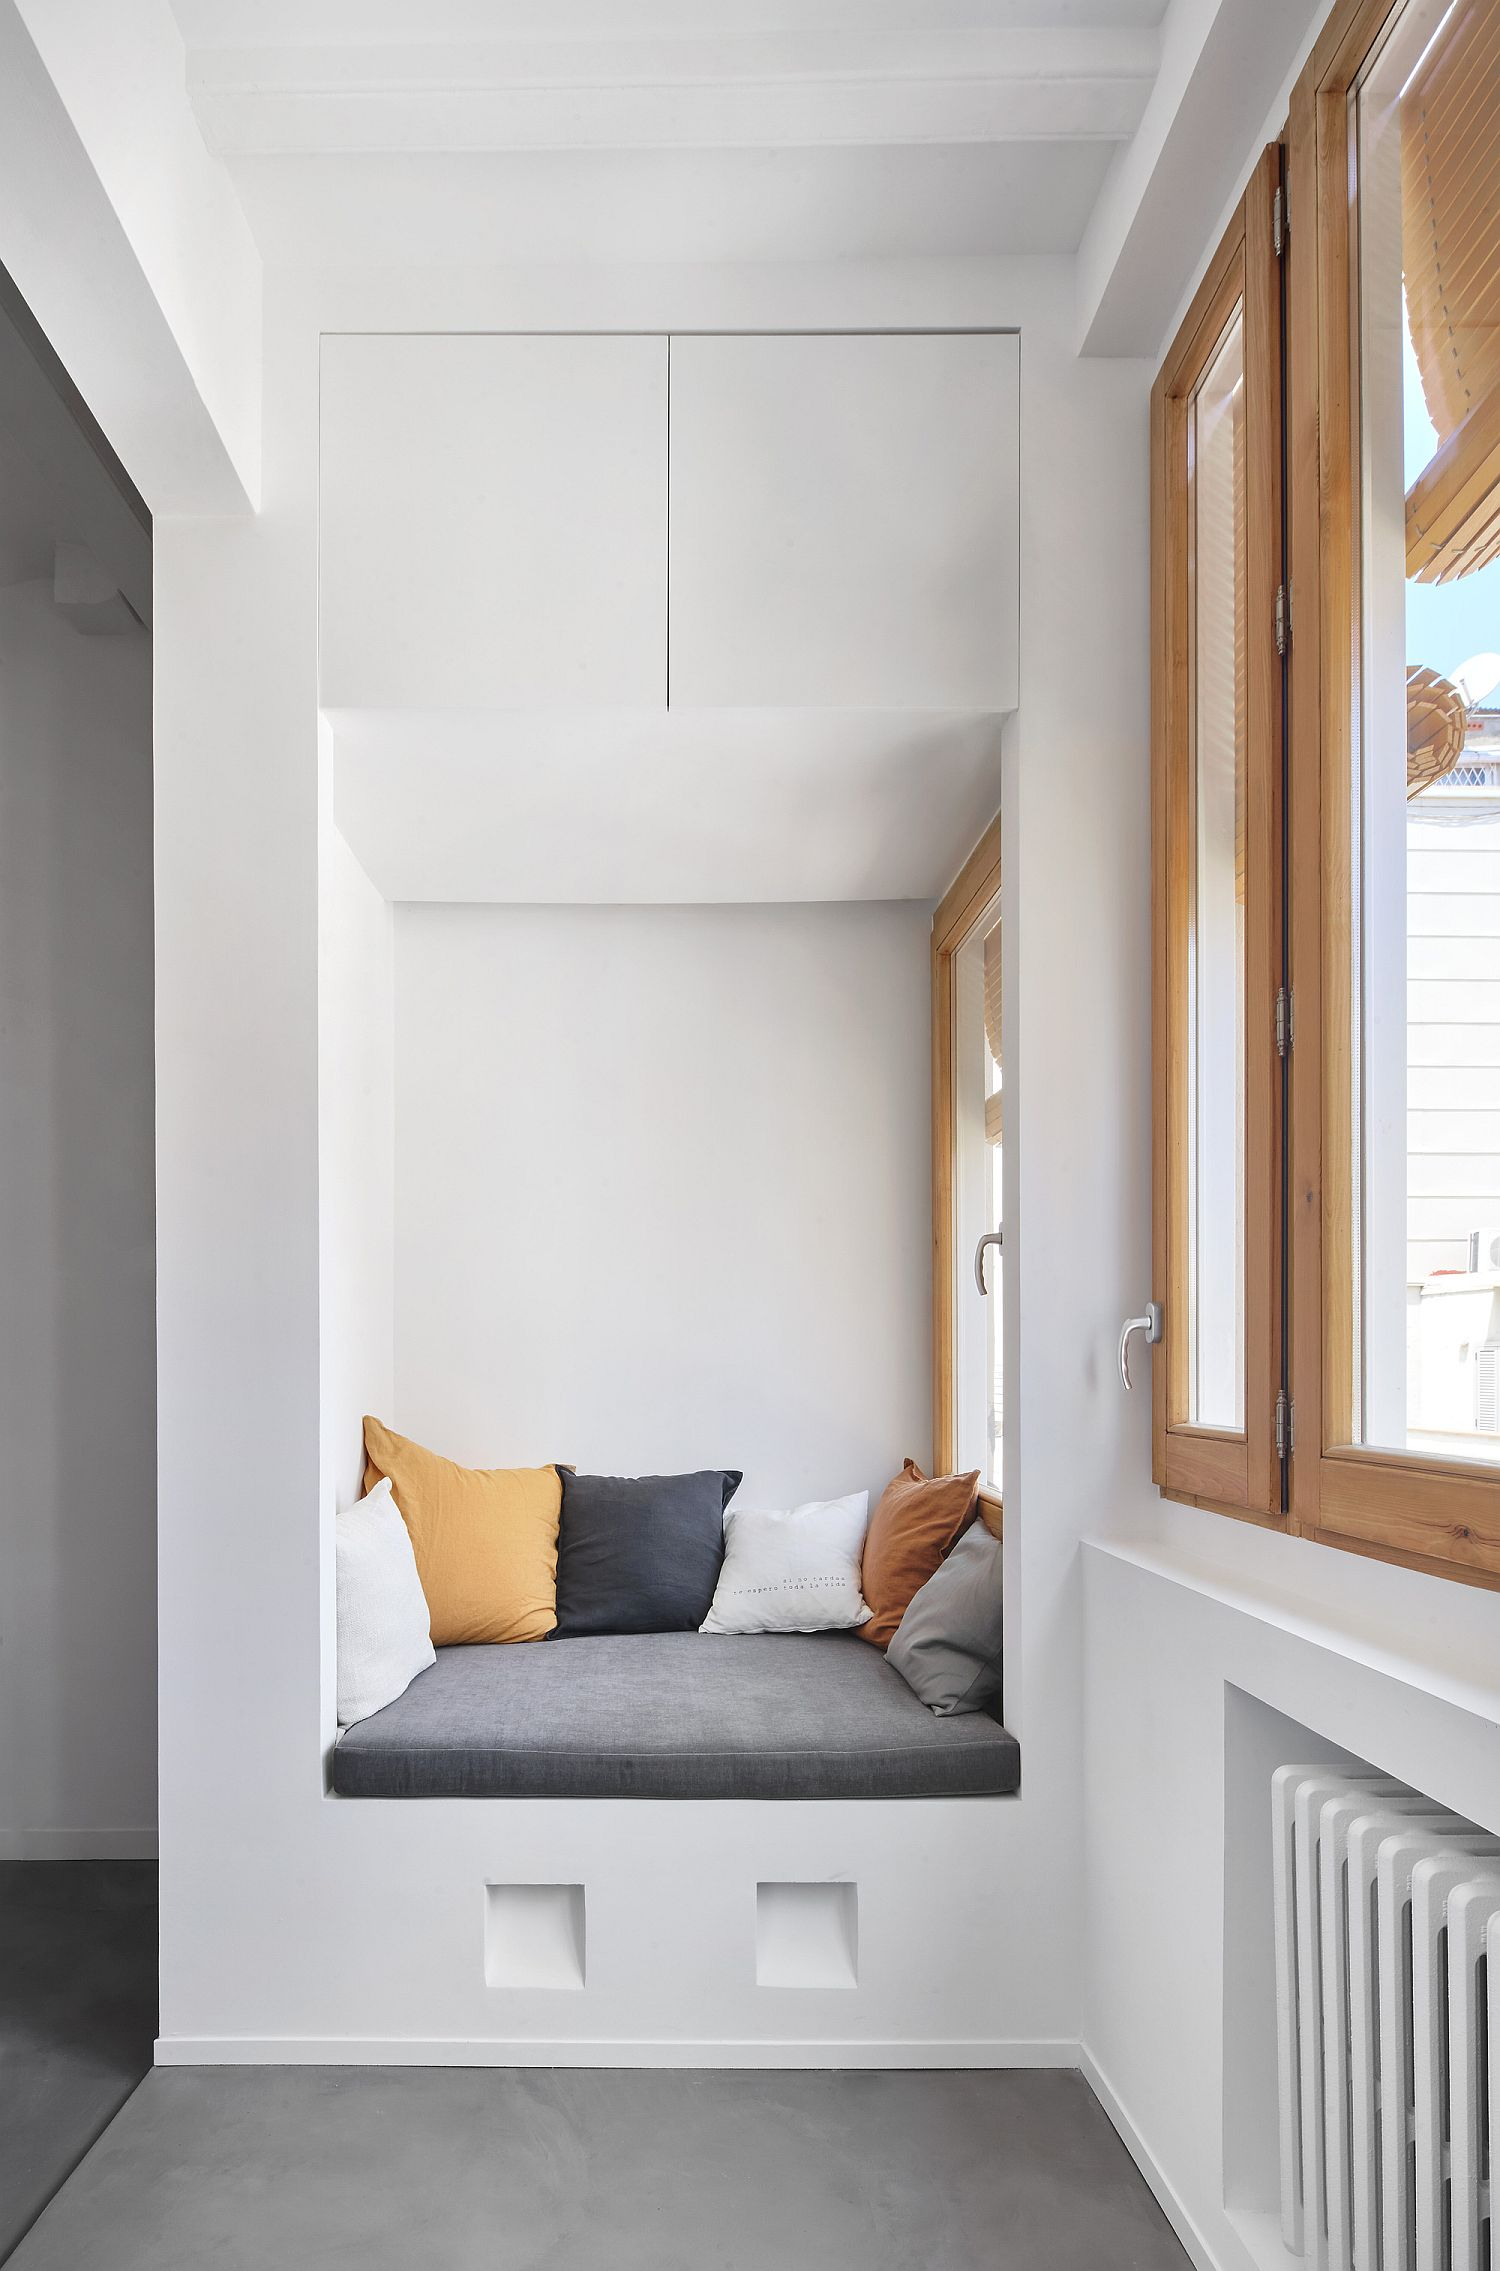 Niche-in-the-corner-with-cozy-seating-option